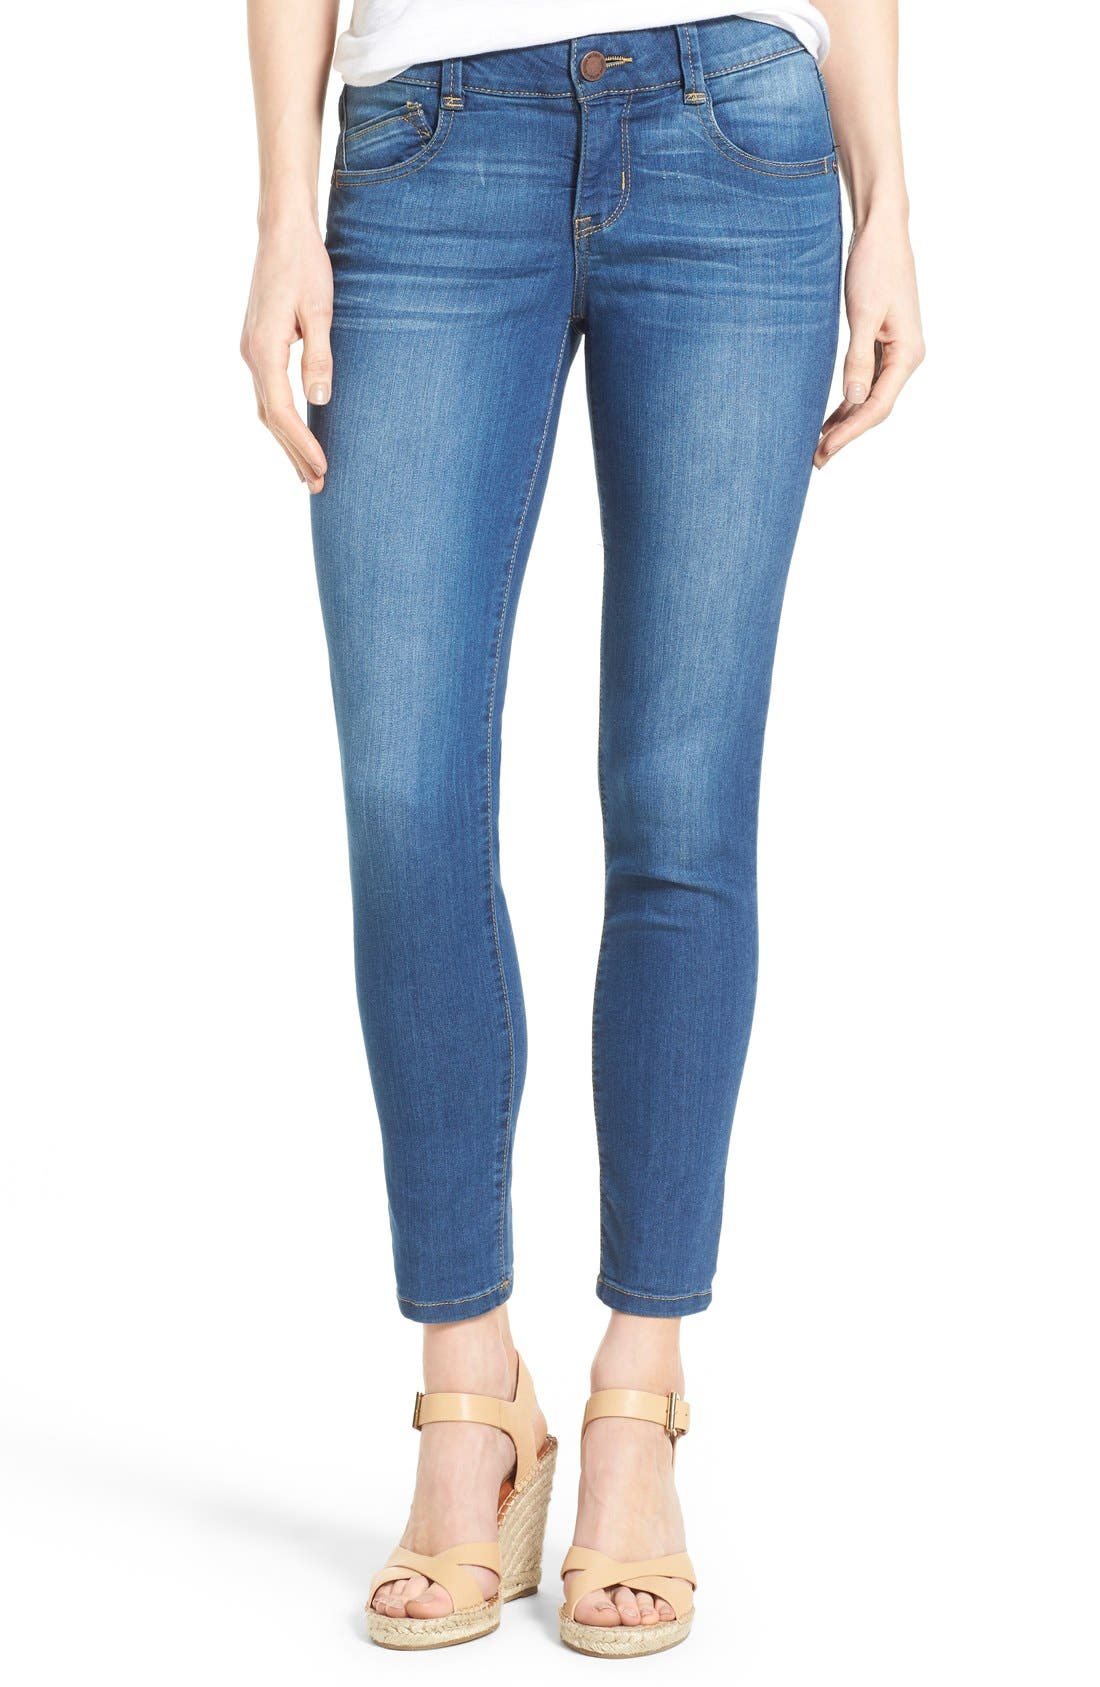 Wit & Wisdom 'Ab-solution' Stretch Ankle Skinny Jeans (Regular & Petite) (Nordstrom Exclusive)